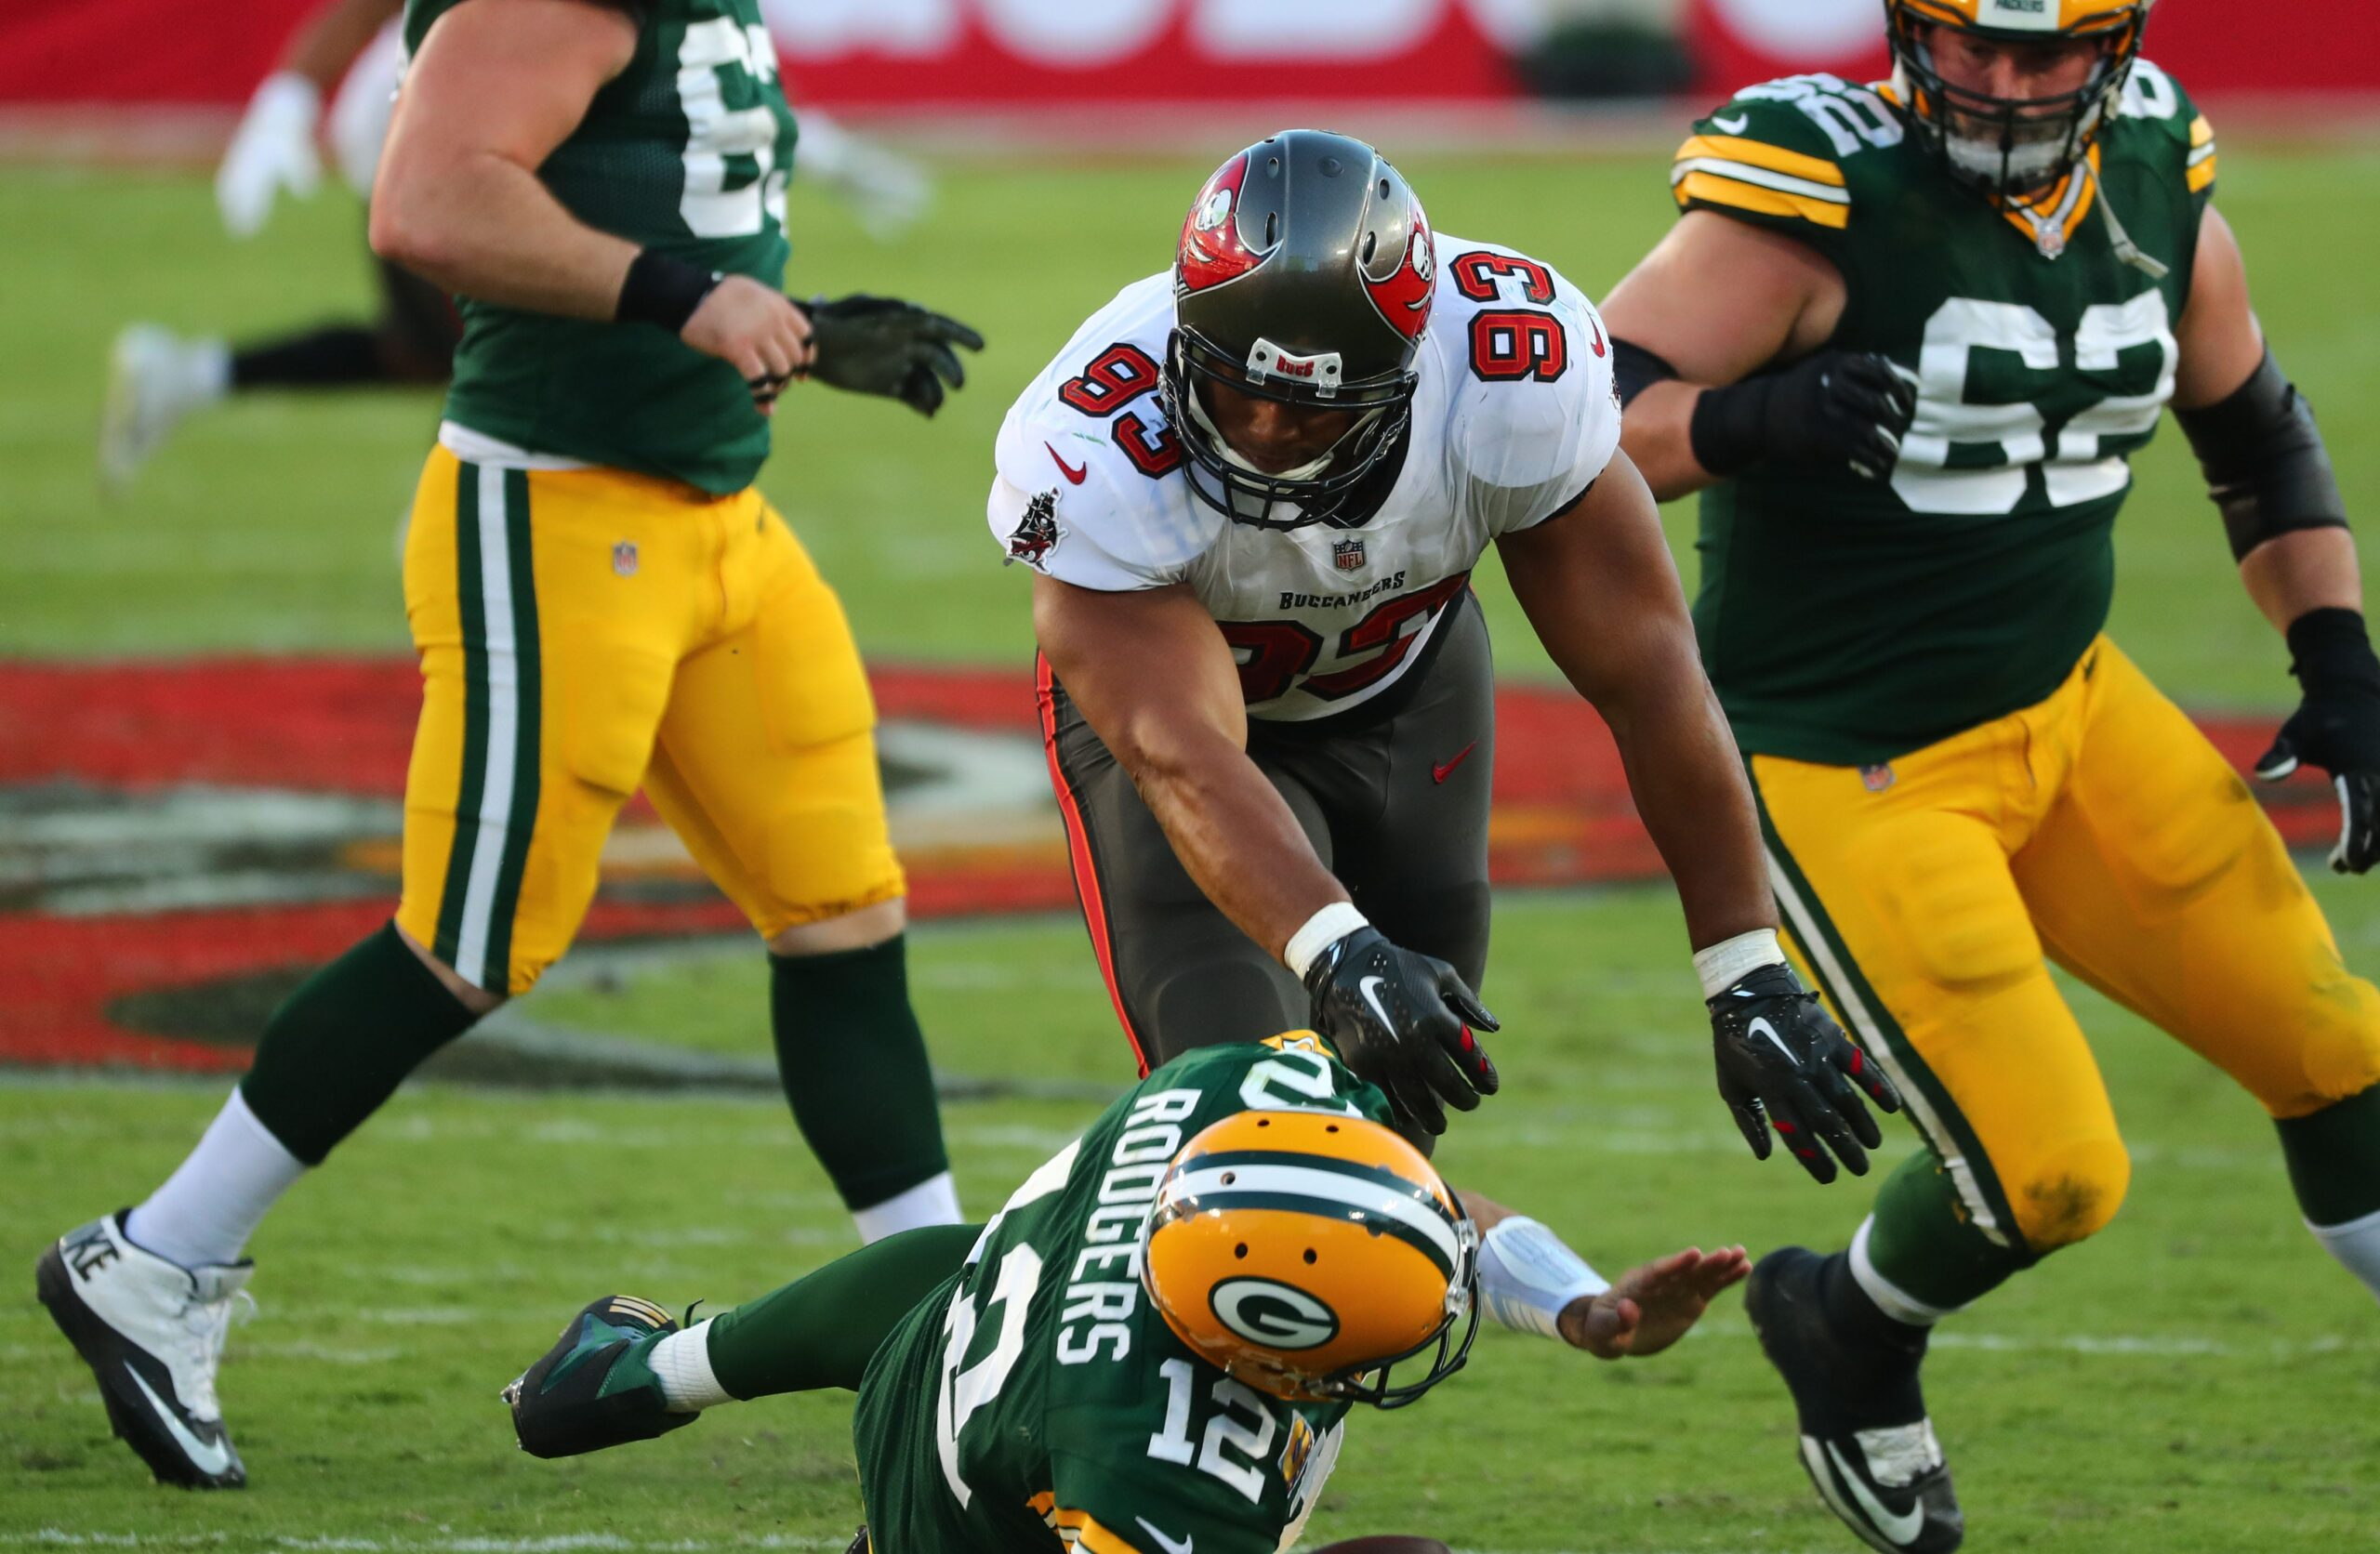 Keeping Rodgers upright is key to Packers victory over Bucs